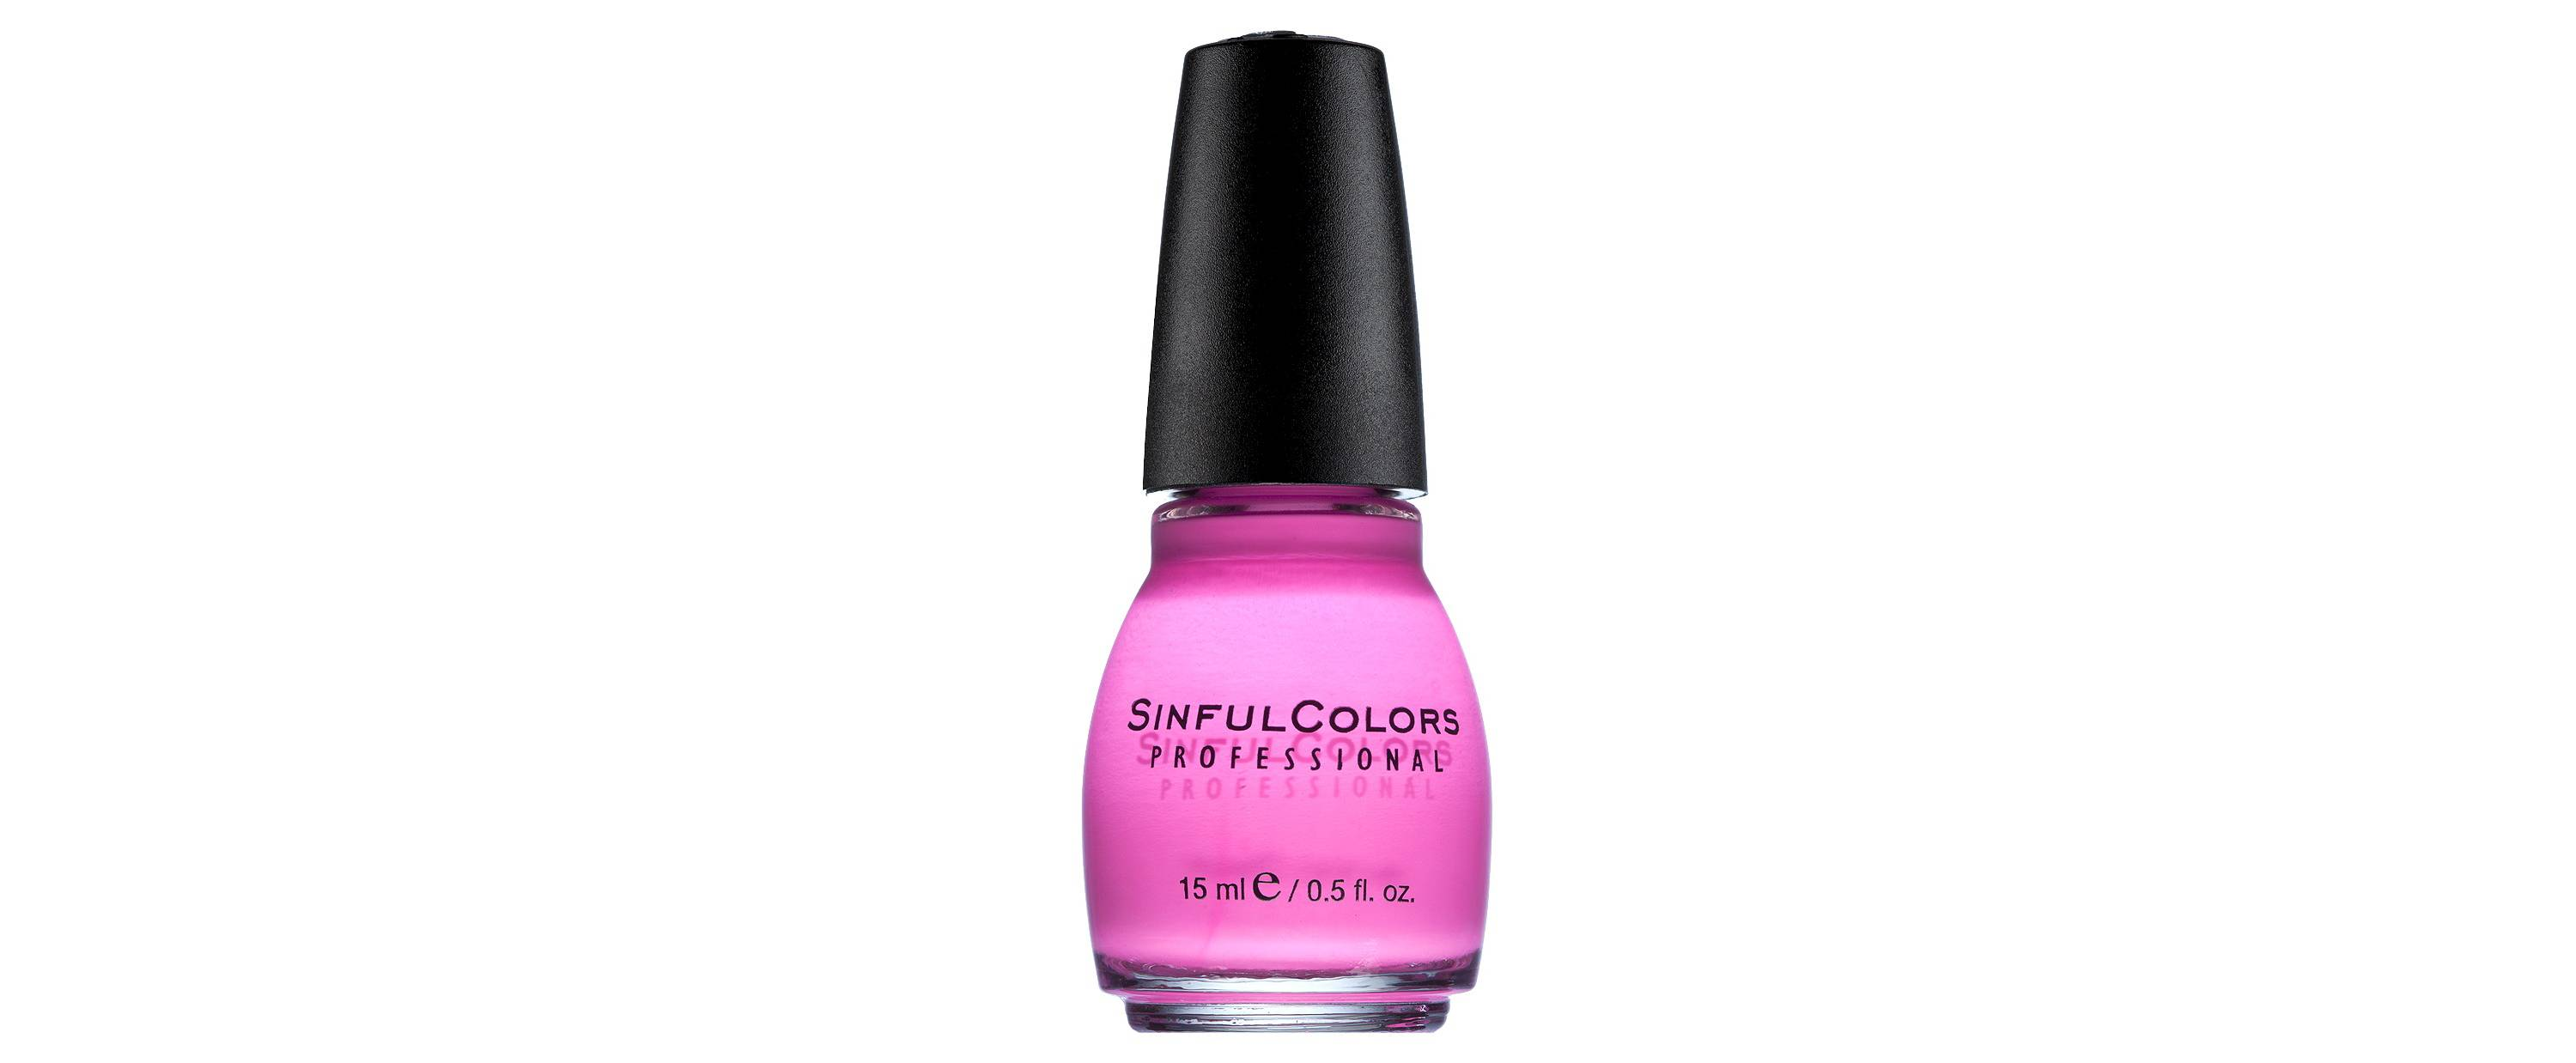 Sinful-colors-pink